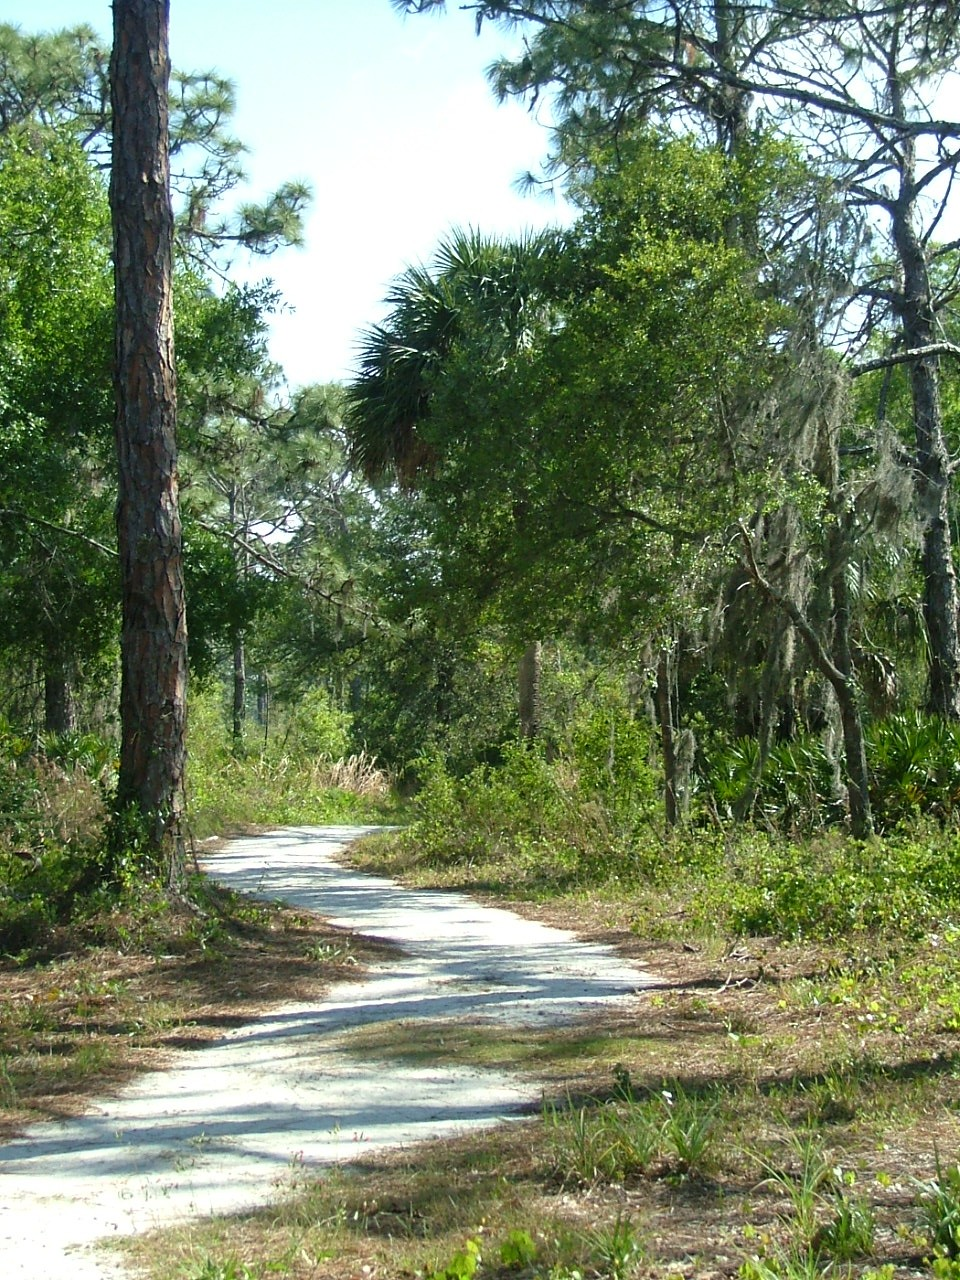 Walking, hiking trail through the Manasota Scrub Preserve